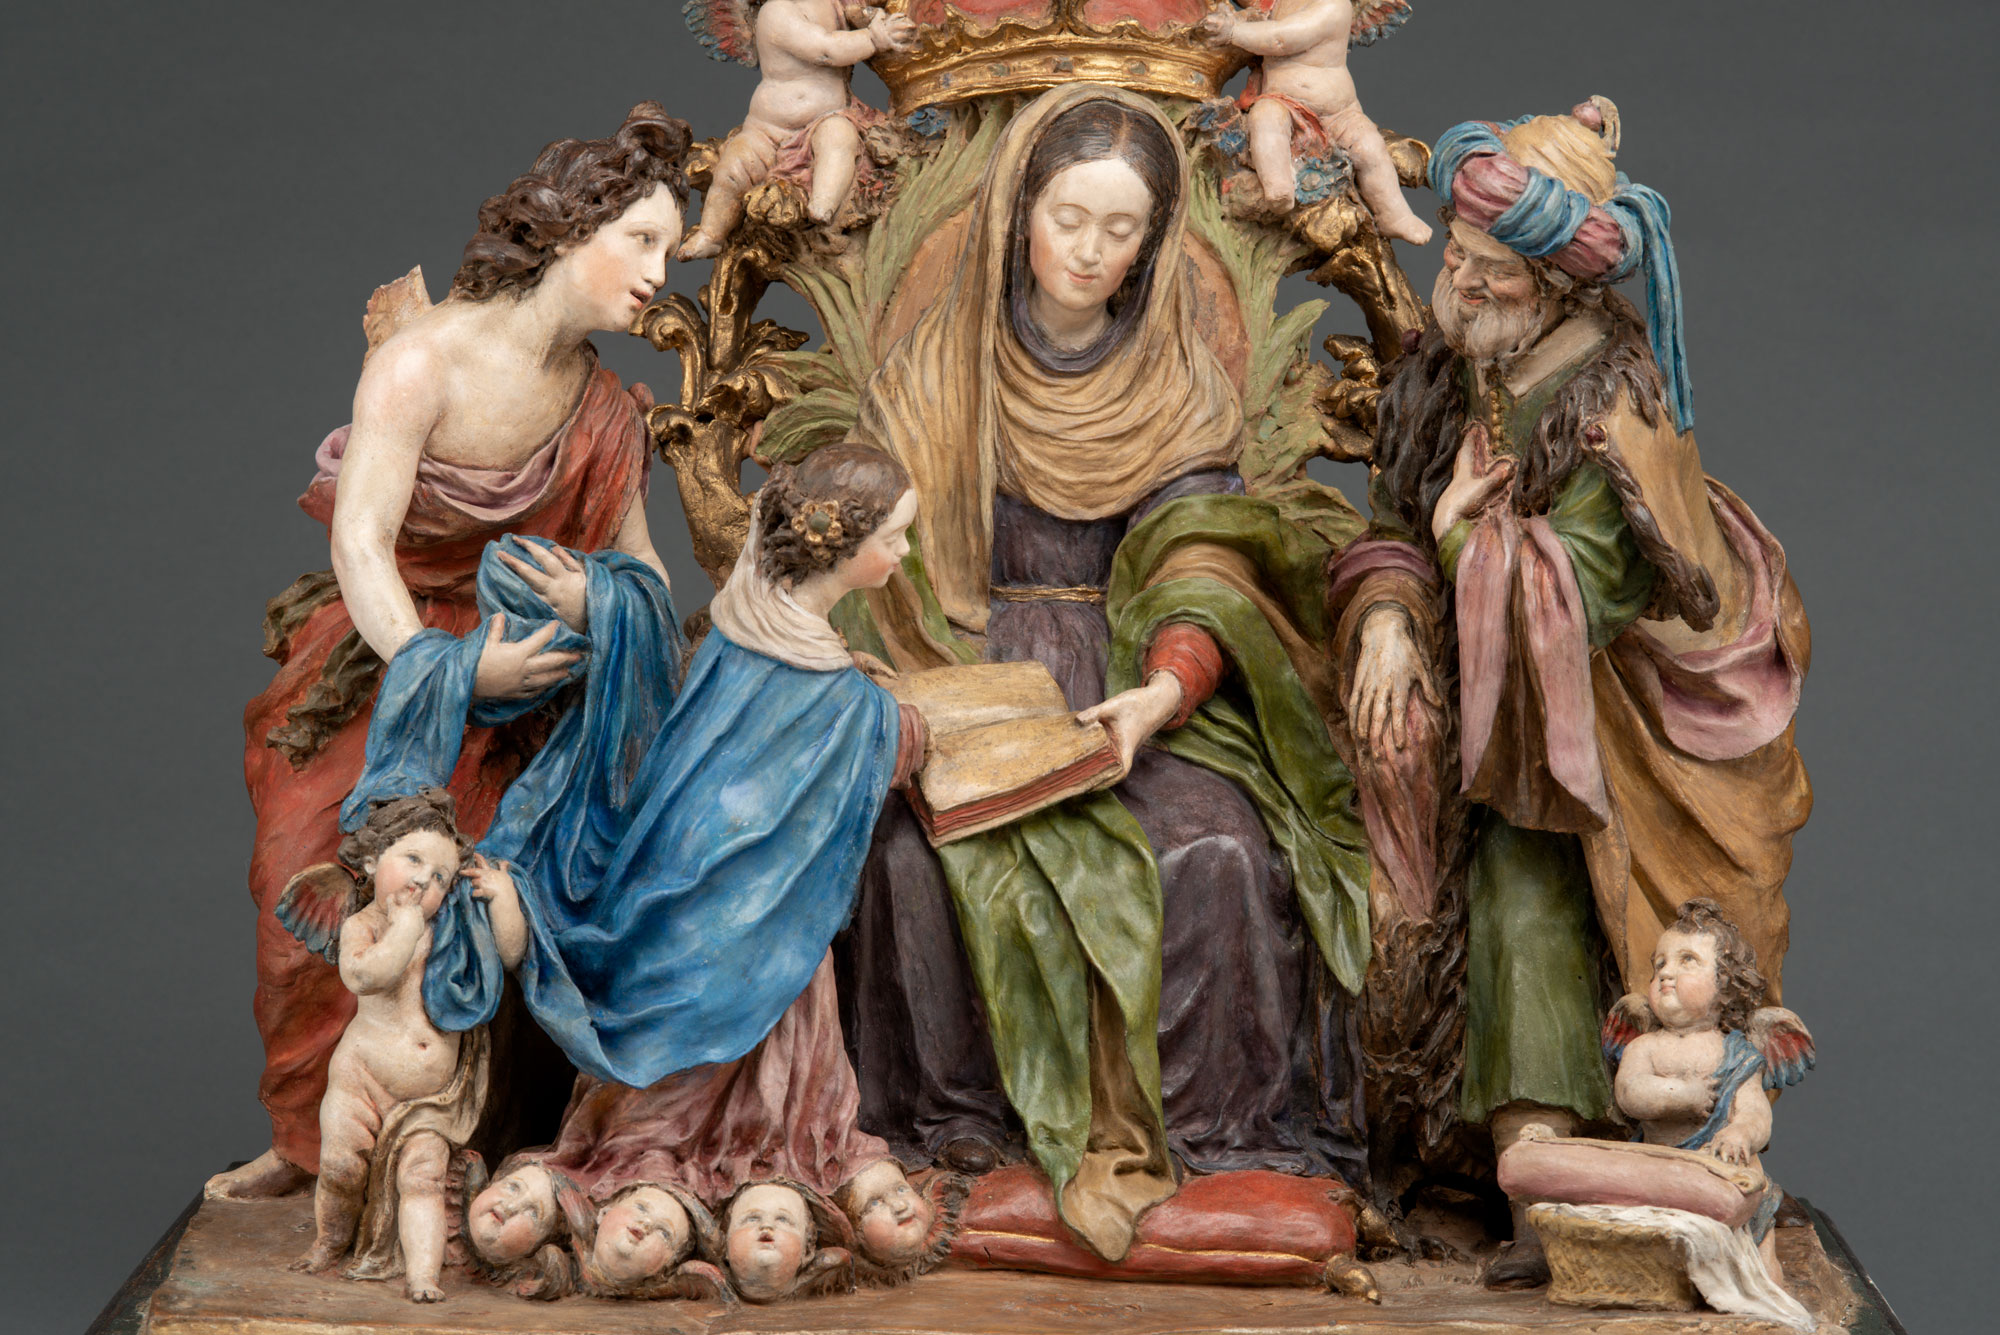 A small painted sculpture of a family encircling a woman. She shares a book with them, while cherubs and winged baby heads look on